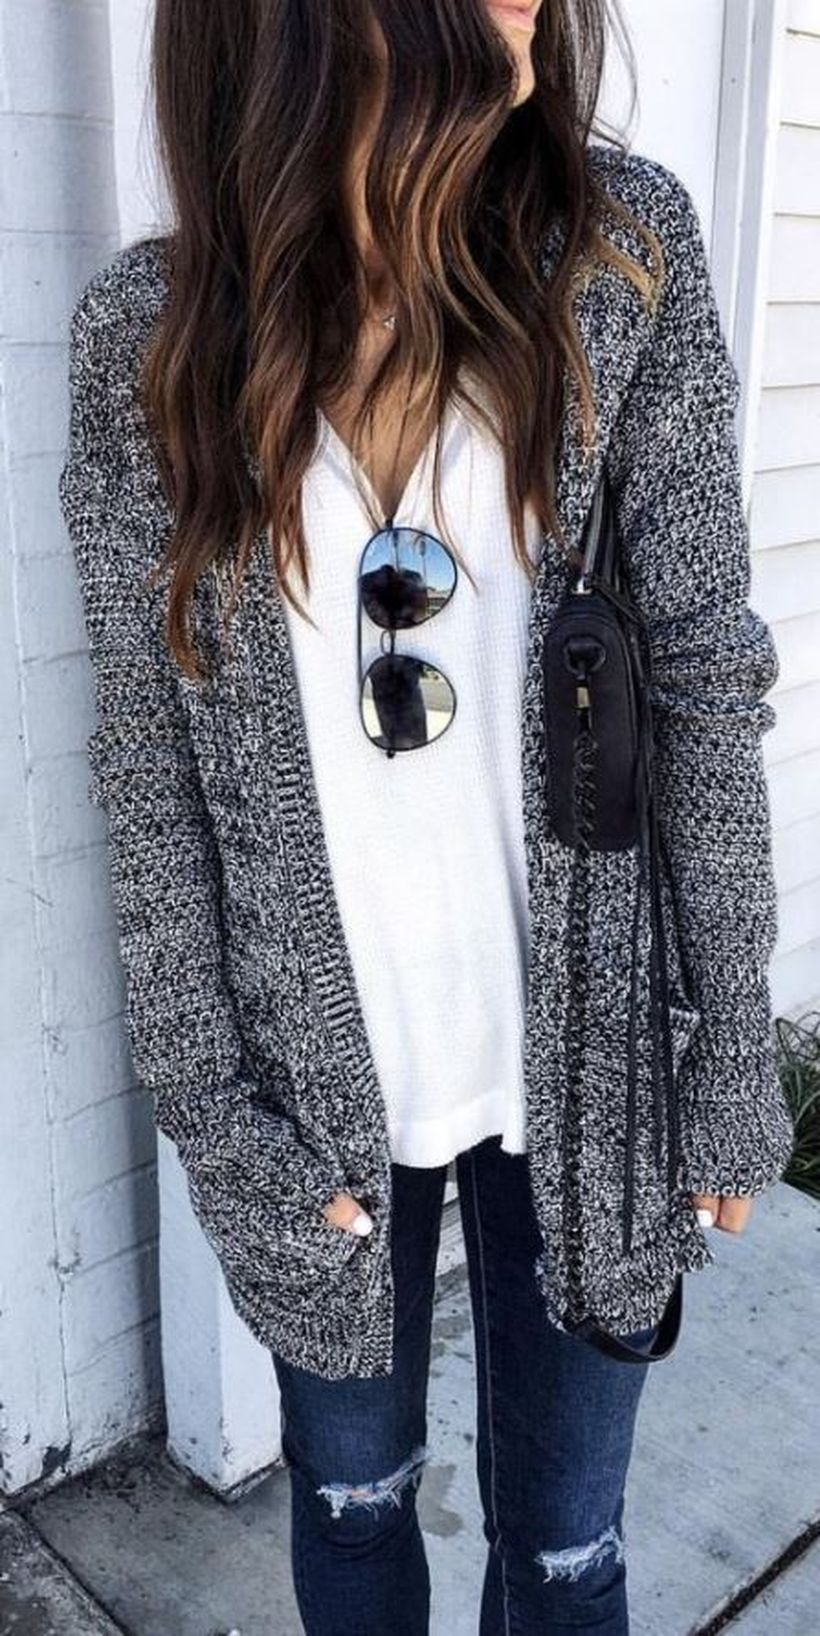 52 Gorgeous Winter Outfits Ideas for Women | J-Celeb